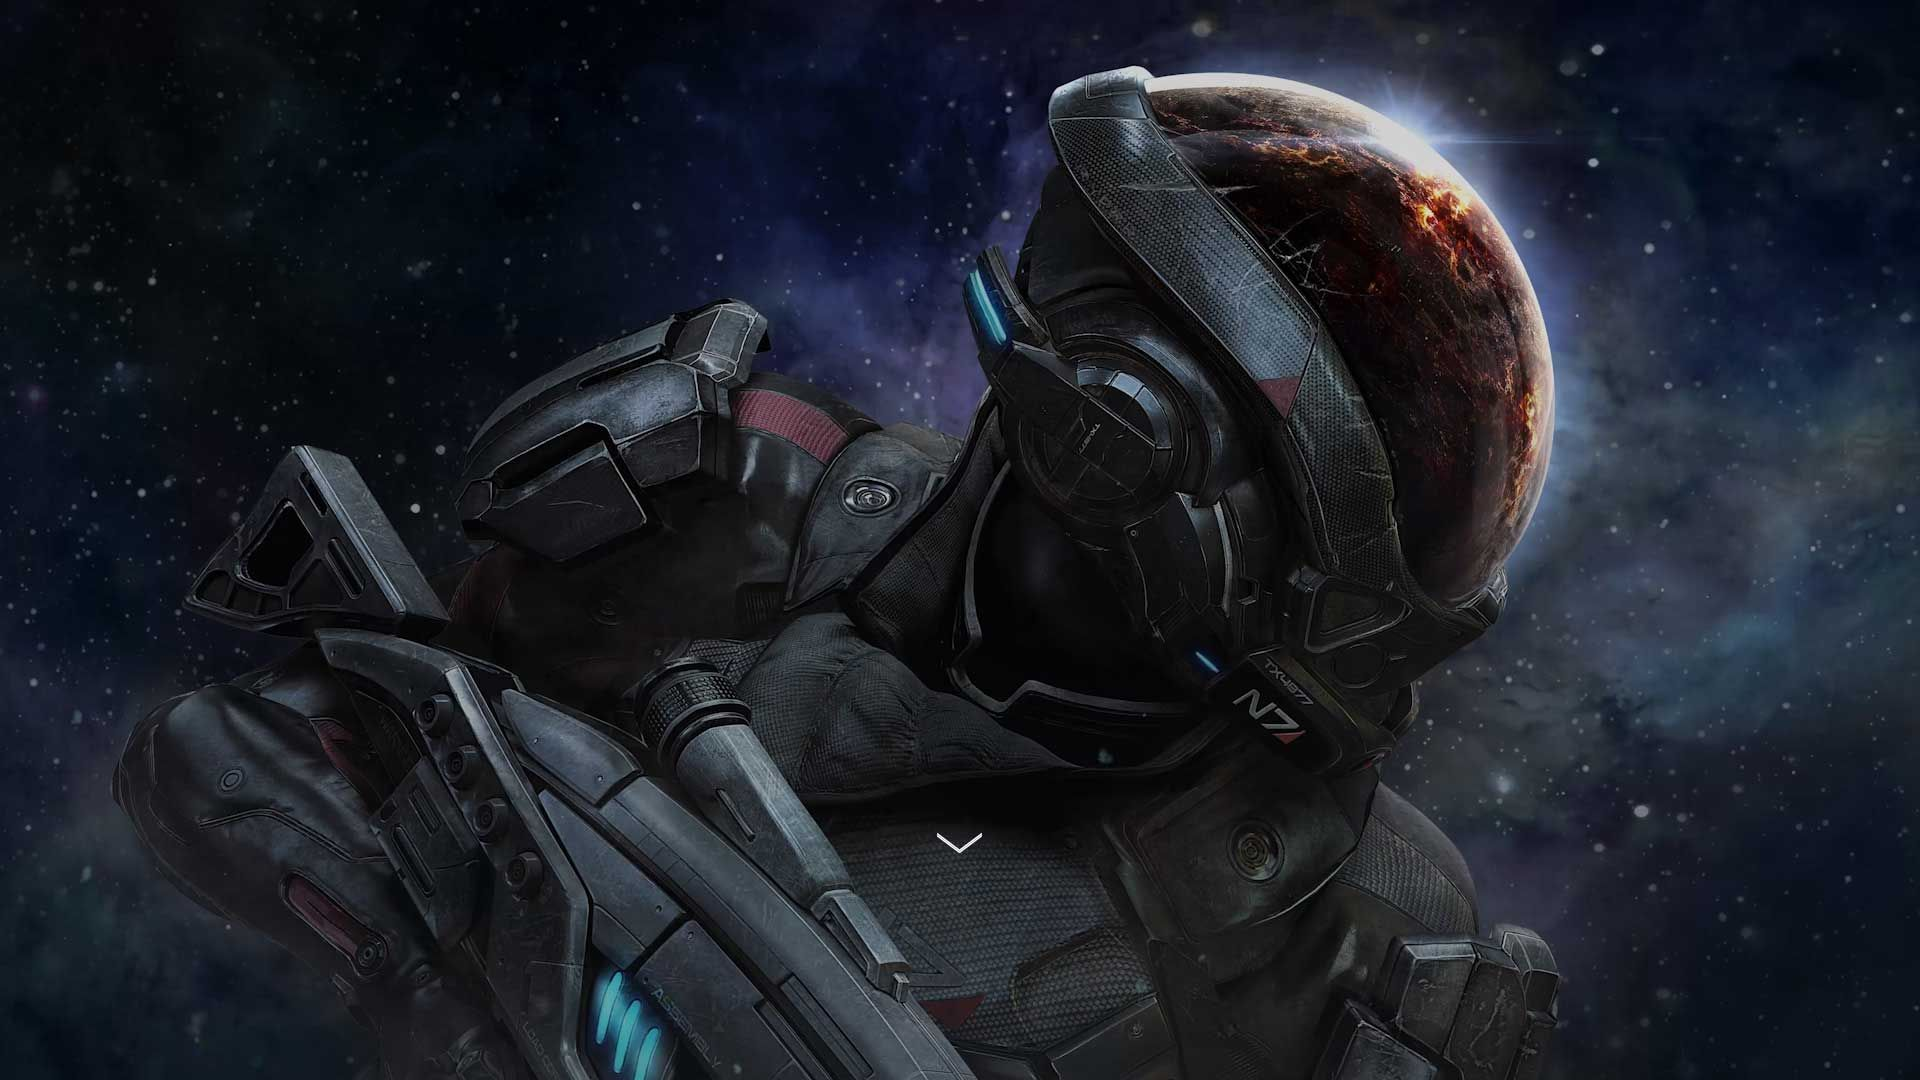 Mass Effect: Andromeda 10-Hour Trial Coming A Week Before Launch, But Not For Everyone